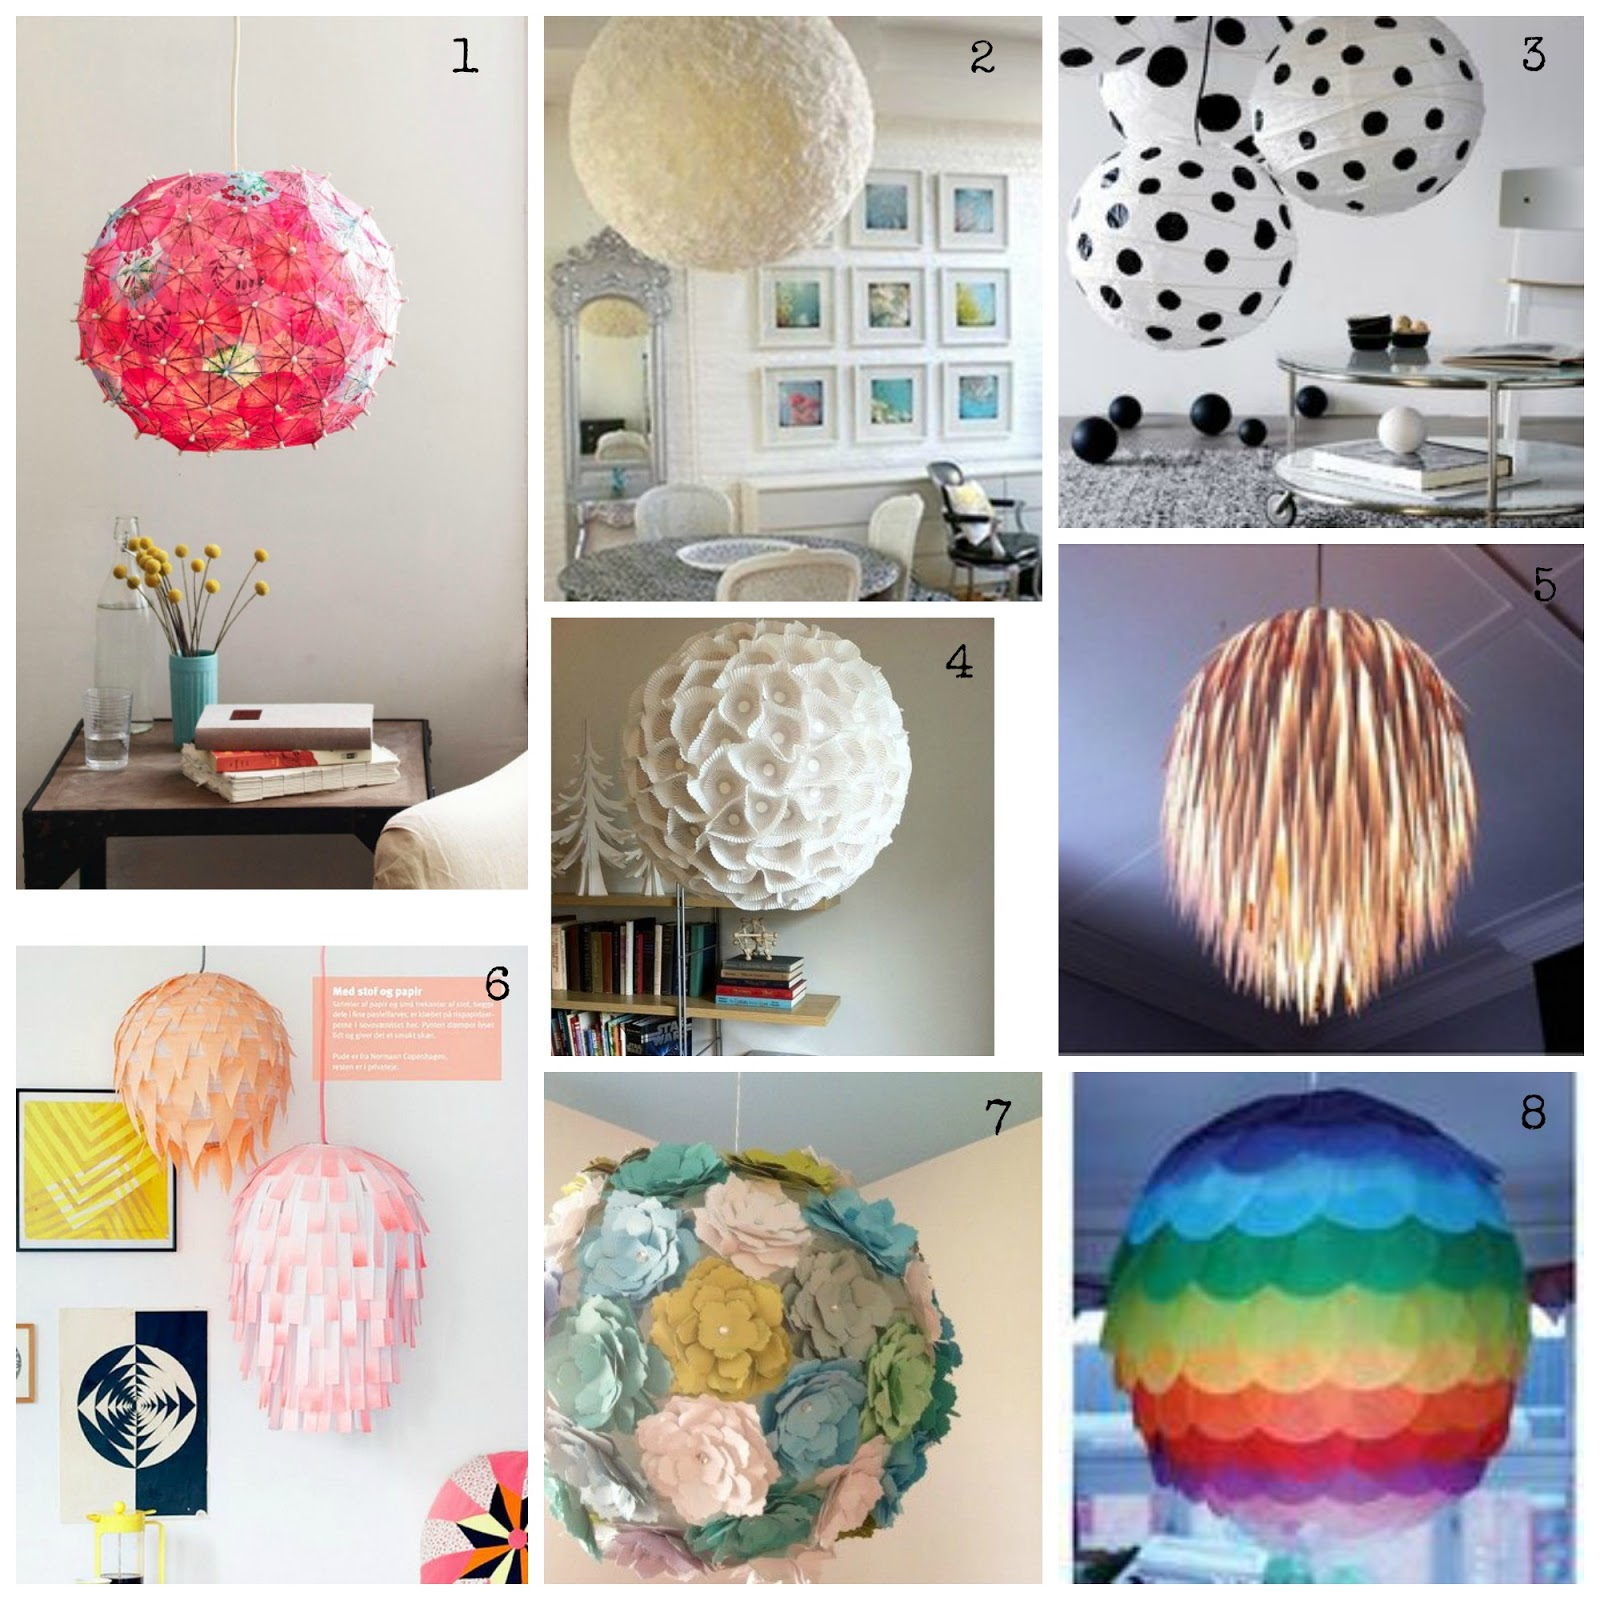 diy paper lamps, many colorful ideas and imagination